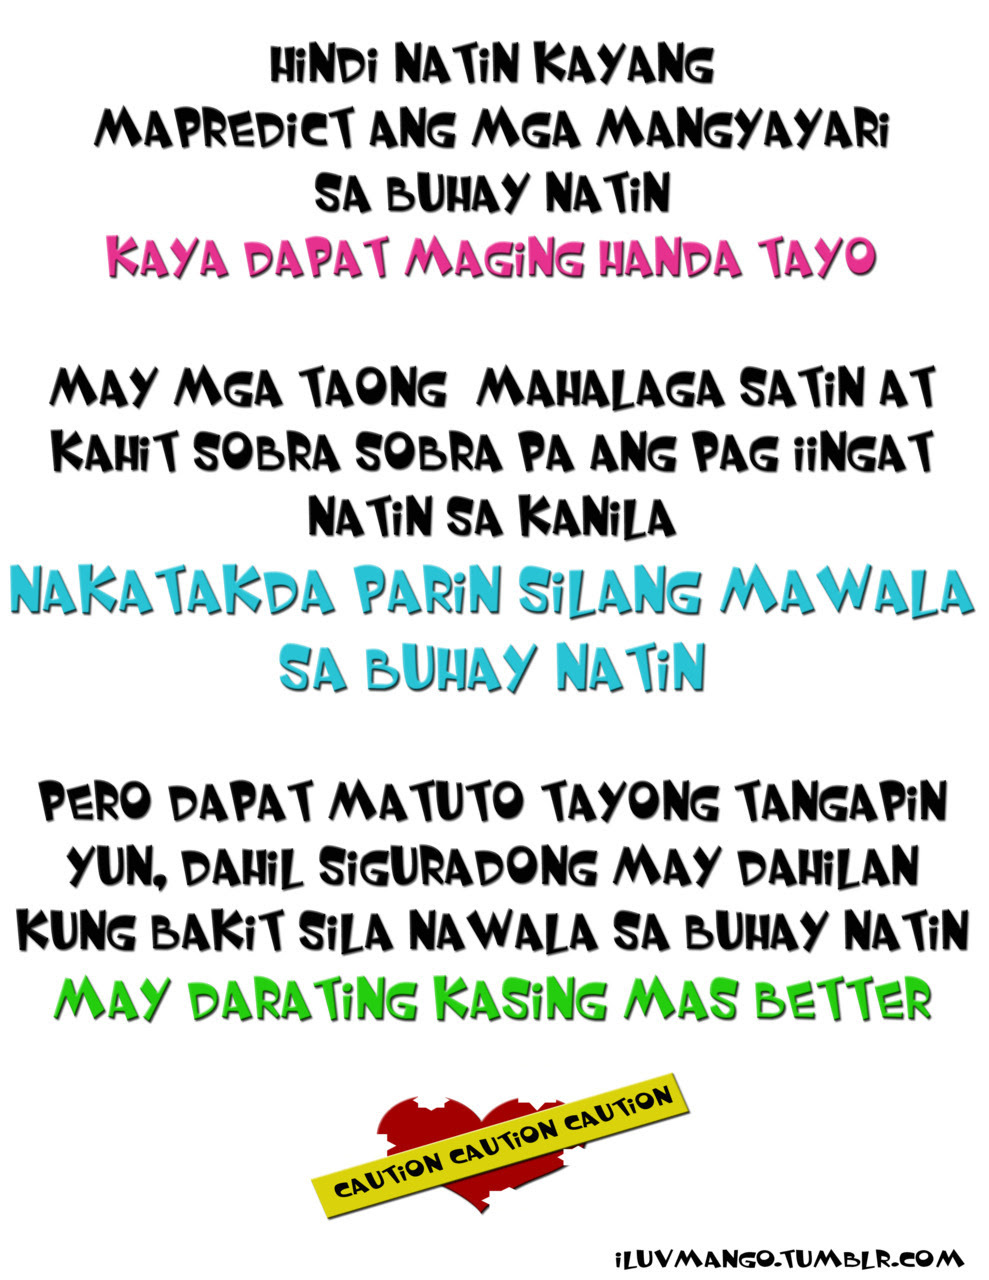 12 tagalog tagalog quotes tagalog love tagalog love quotes payo